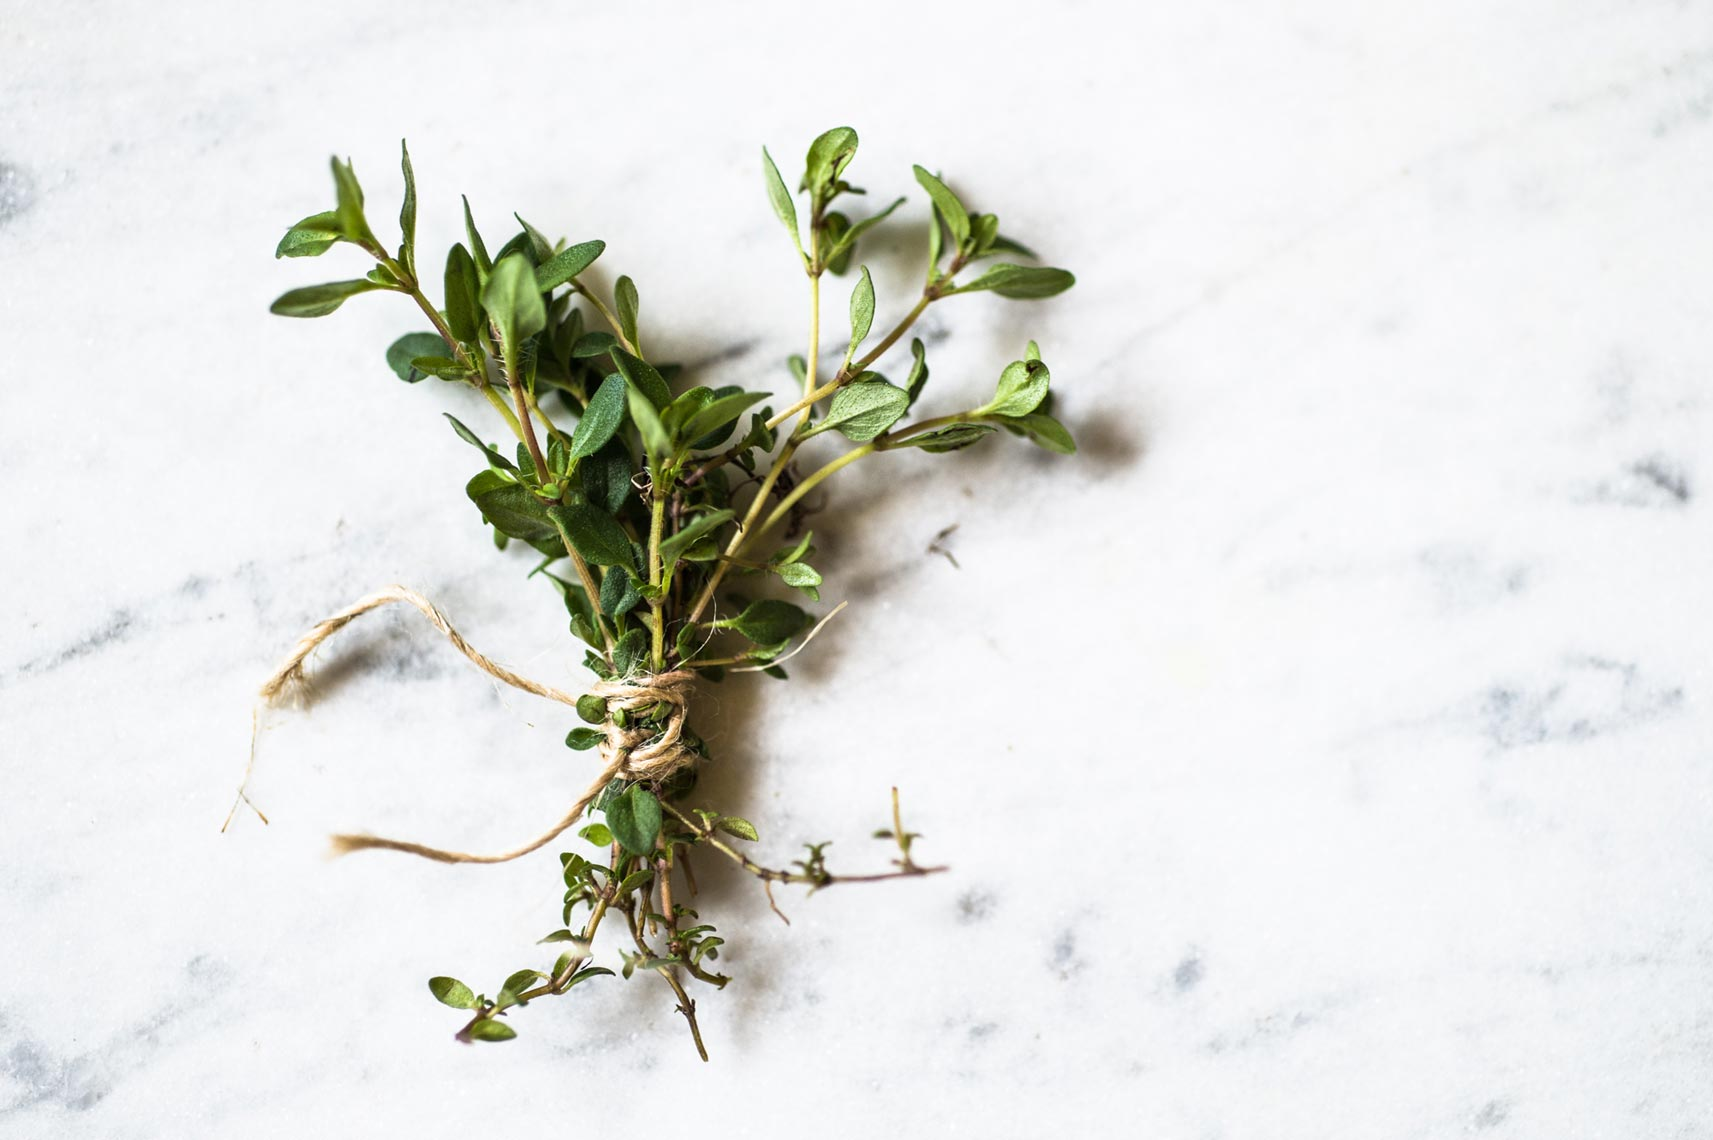 Wild Thyme Hudson Valley Foraged Food Photographer Jennifer May